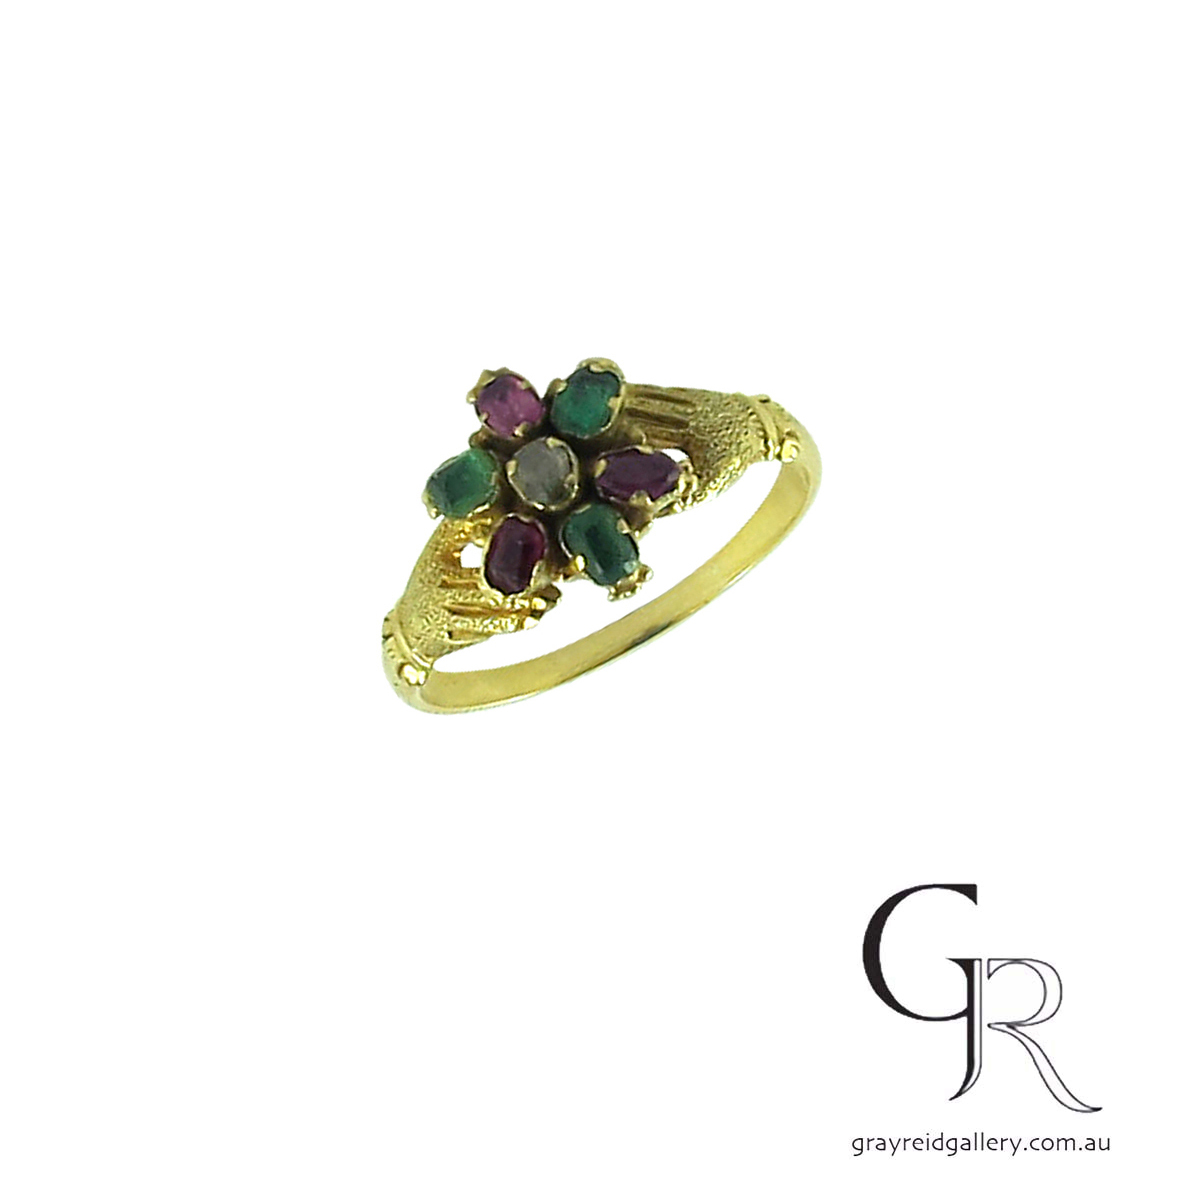 antique ruby and emerald ring melbourne gray reid gallery.jpg